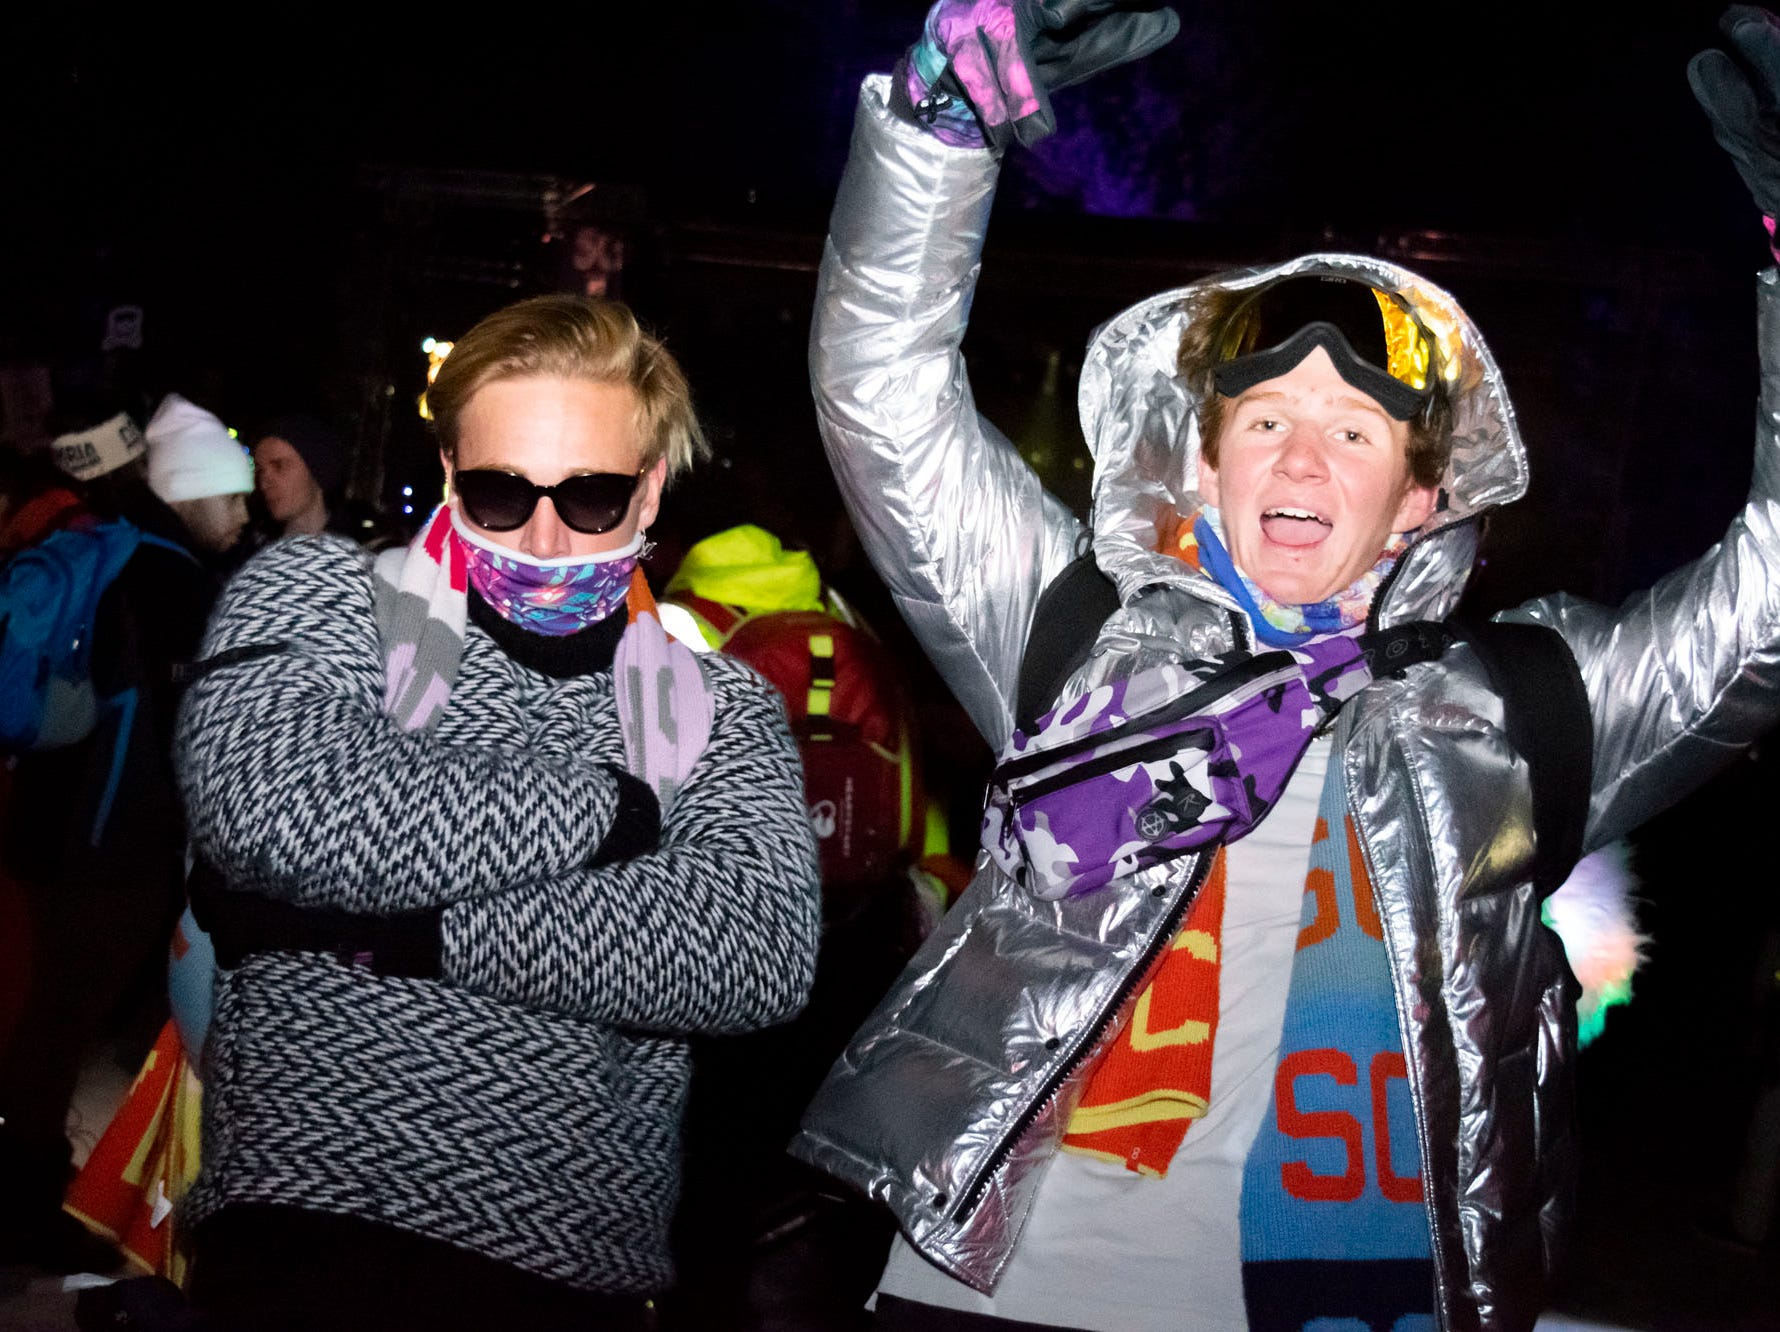 Cam and Christian Twellman attend the Snowglobe Music Festival on Saturday, Dec. 29, 2018. South Lake Tahoe, Calif.